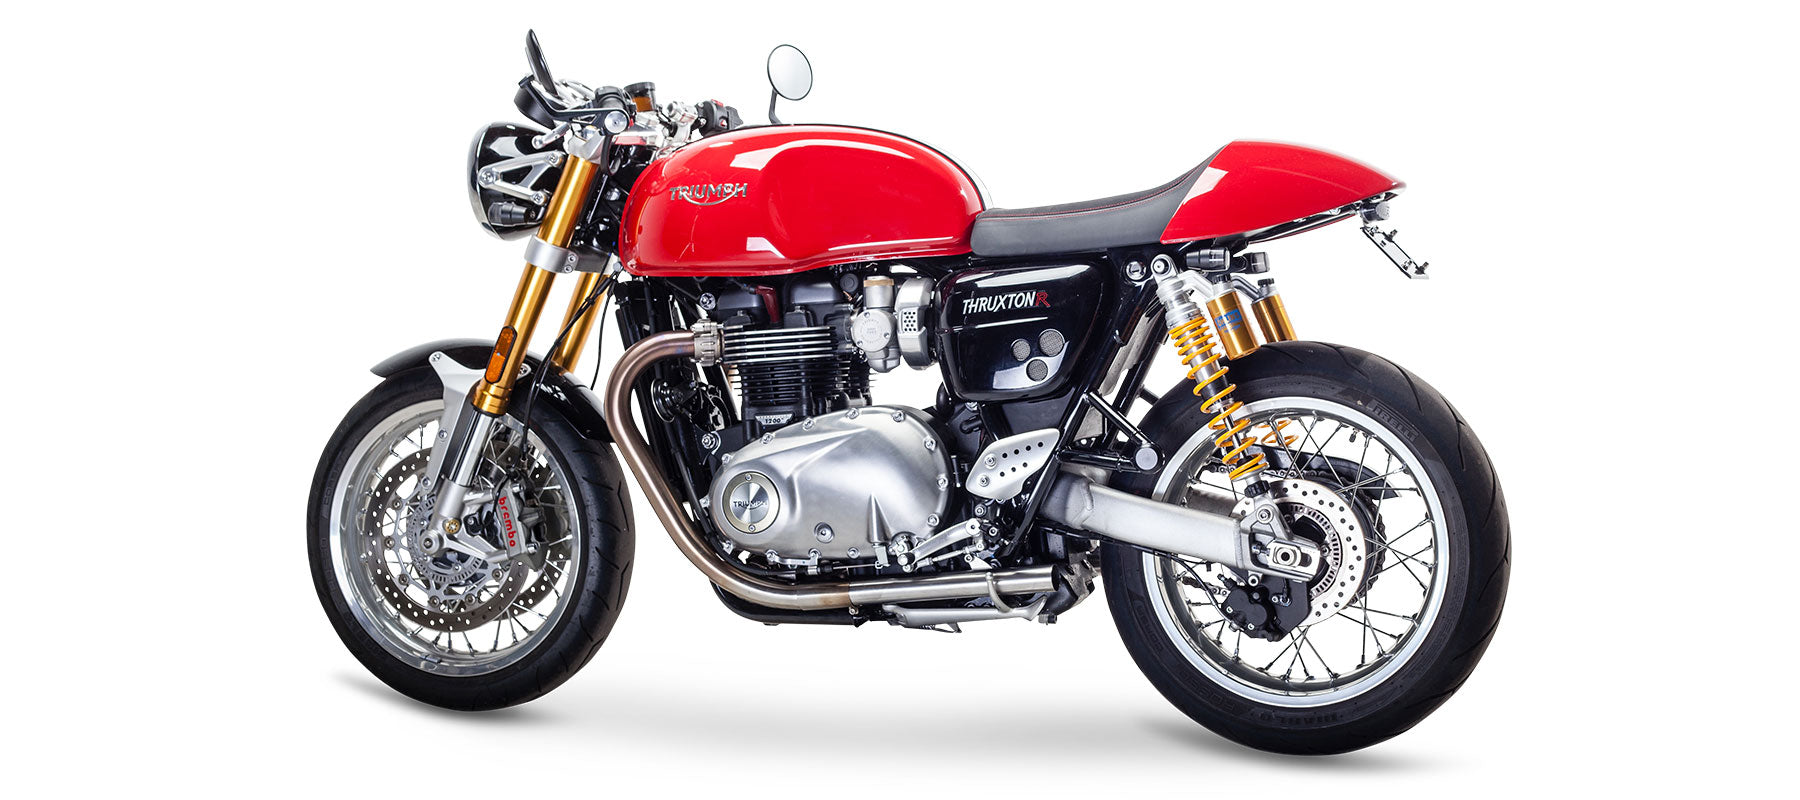 GP Sip On Exhaust for Triumph Thruxton R by British Customs